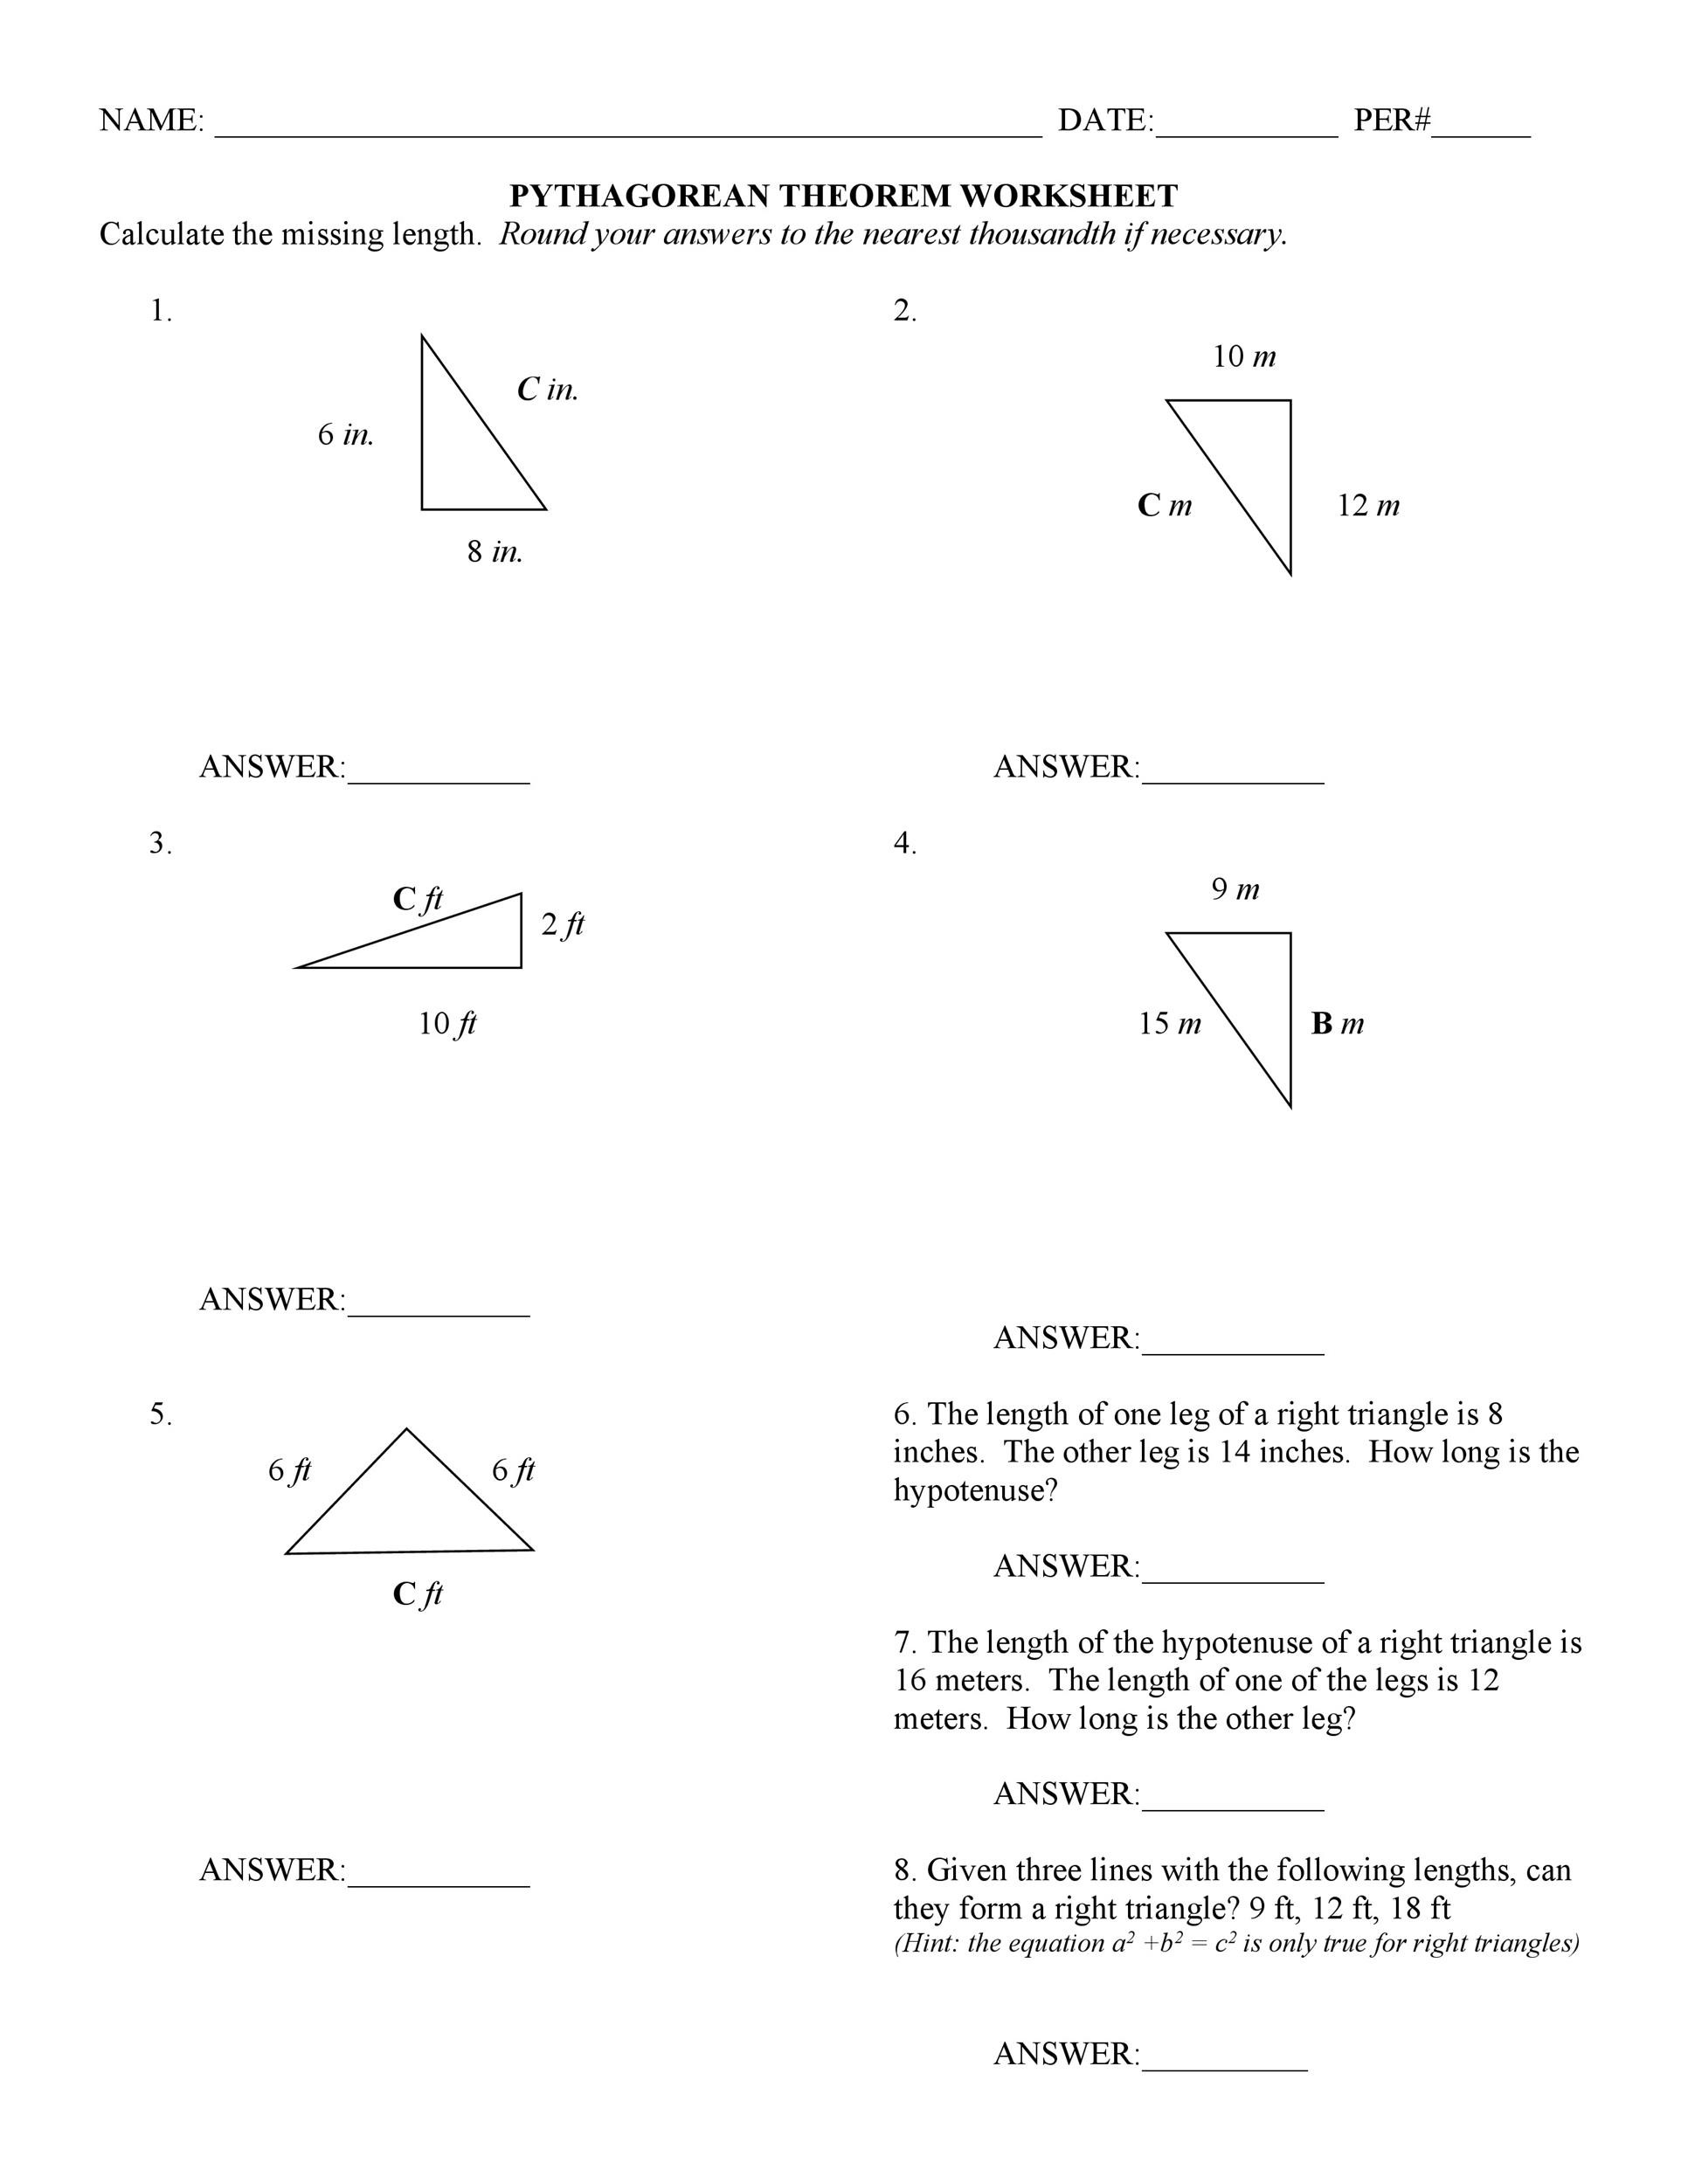 Free pythagorean theorem 23